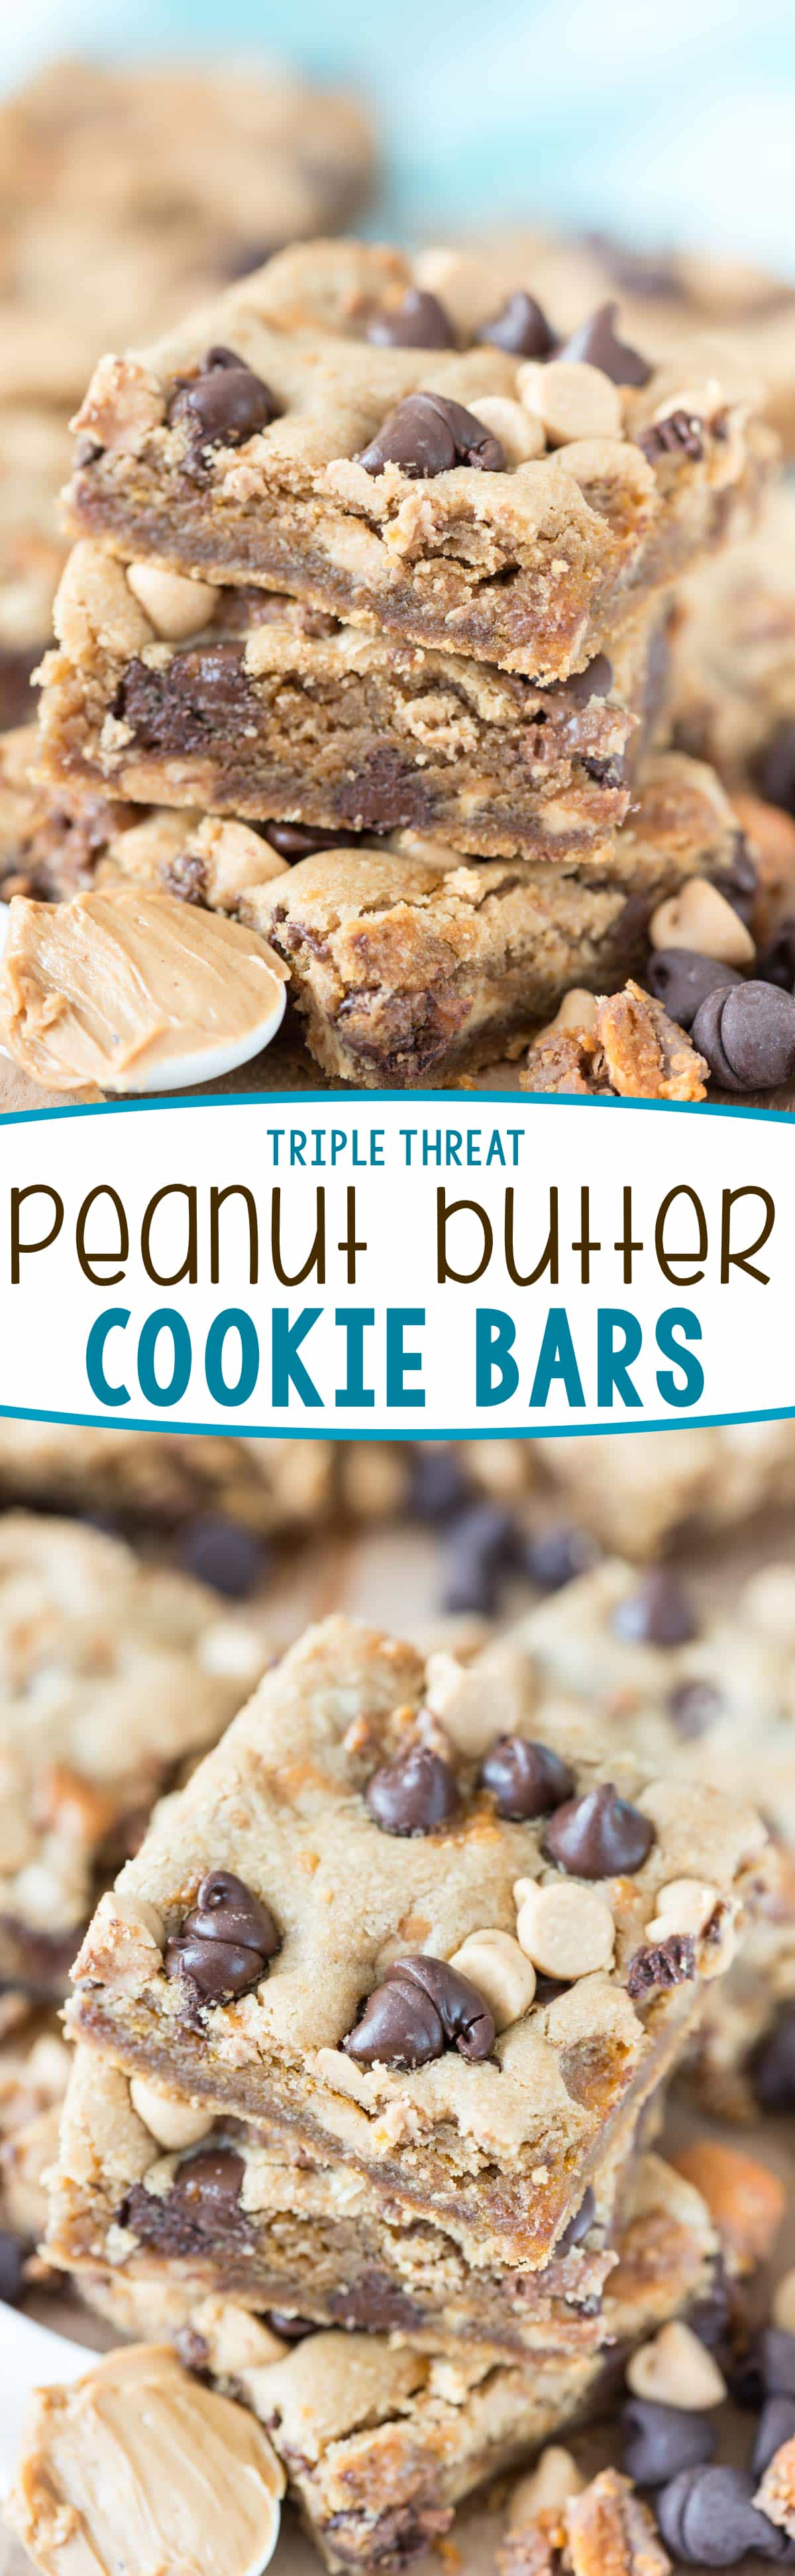 Triple Threat Peanut Butter Cookie Bars - this easy peanut butter cookie recipe is filled with peanut butter chips, Butterfingers candy bars, and chocolate. It's the BEST bar cookie recipe!